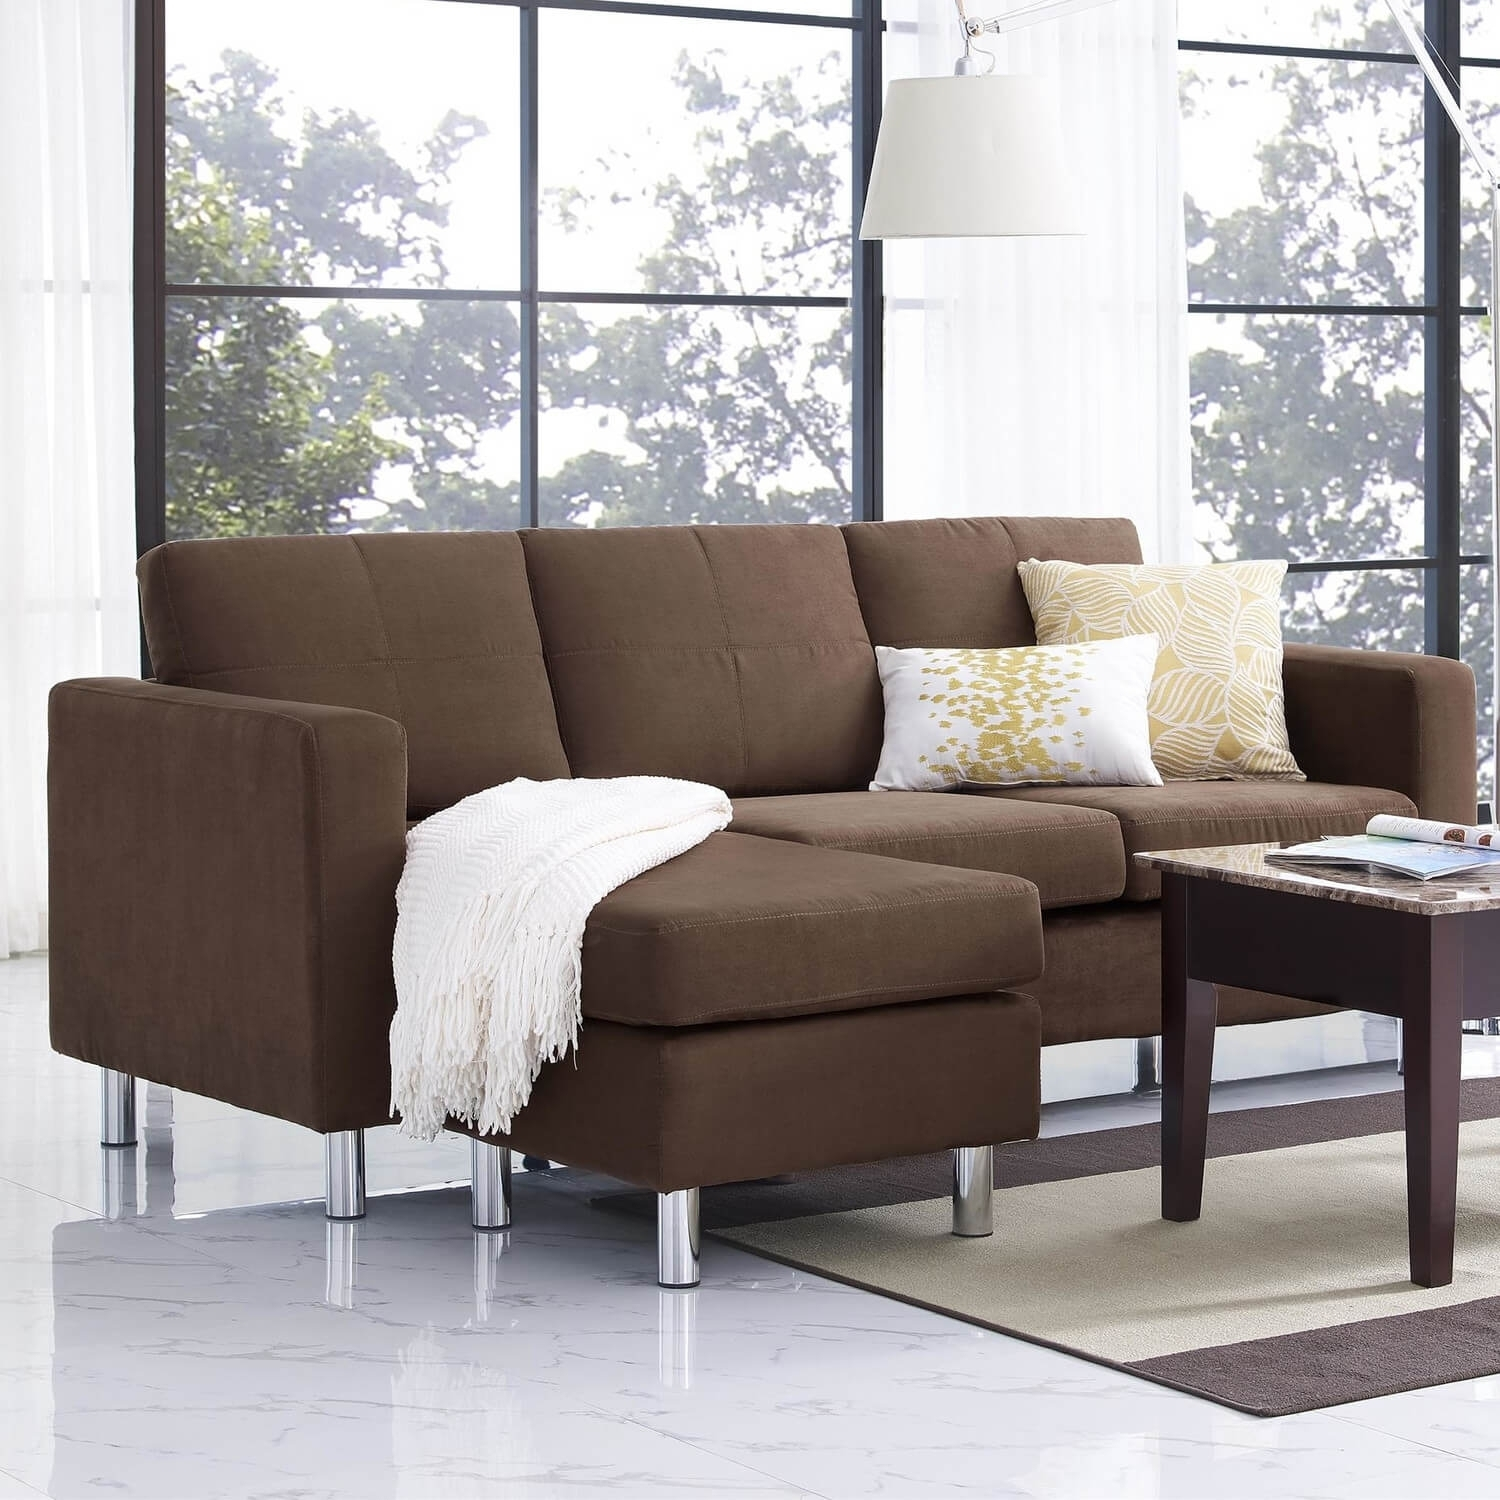 Small Spaces Sectional Sofa With Microfiber Upholstery • Sectional Sofa In Sectional Sofas Under  (Image 8 of 10)